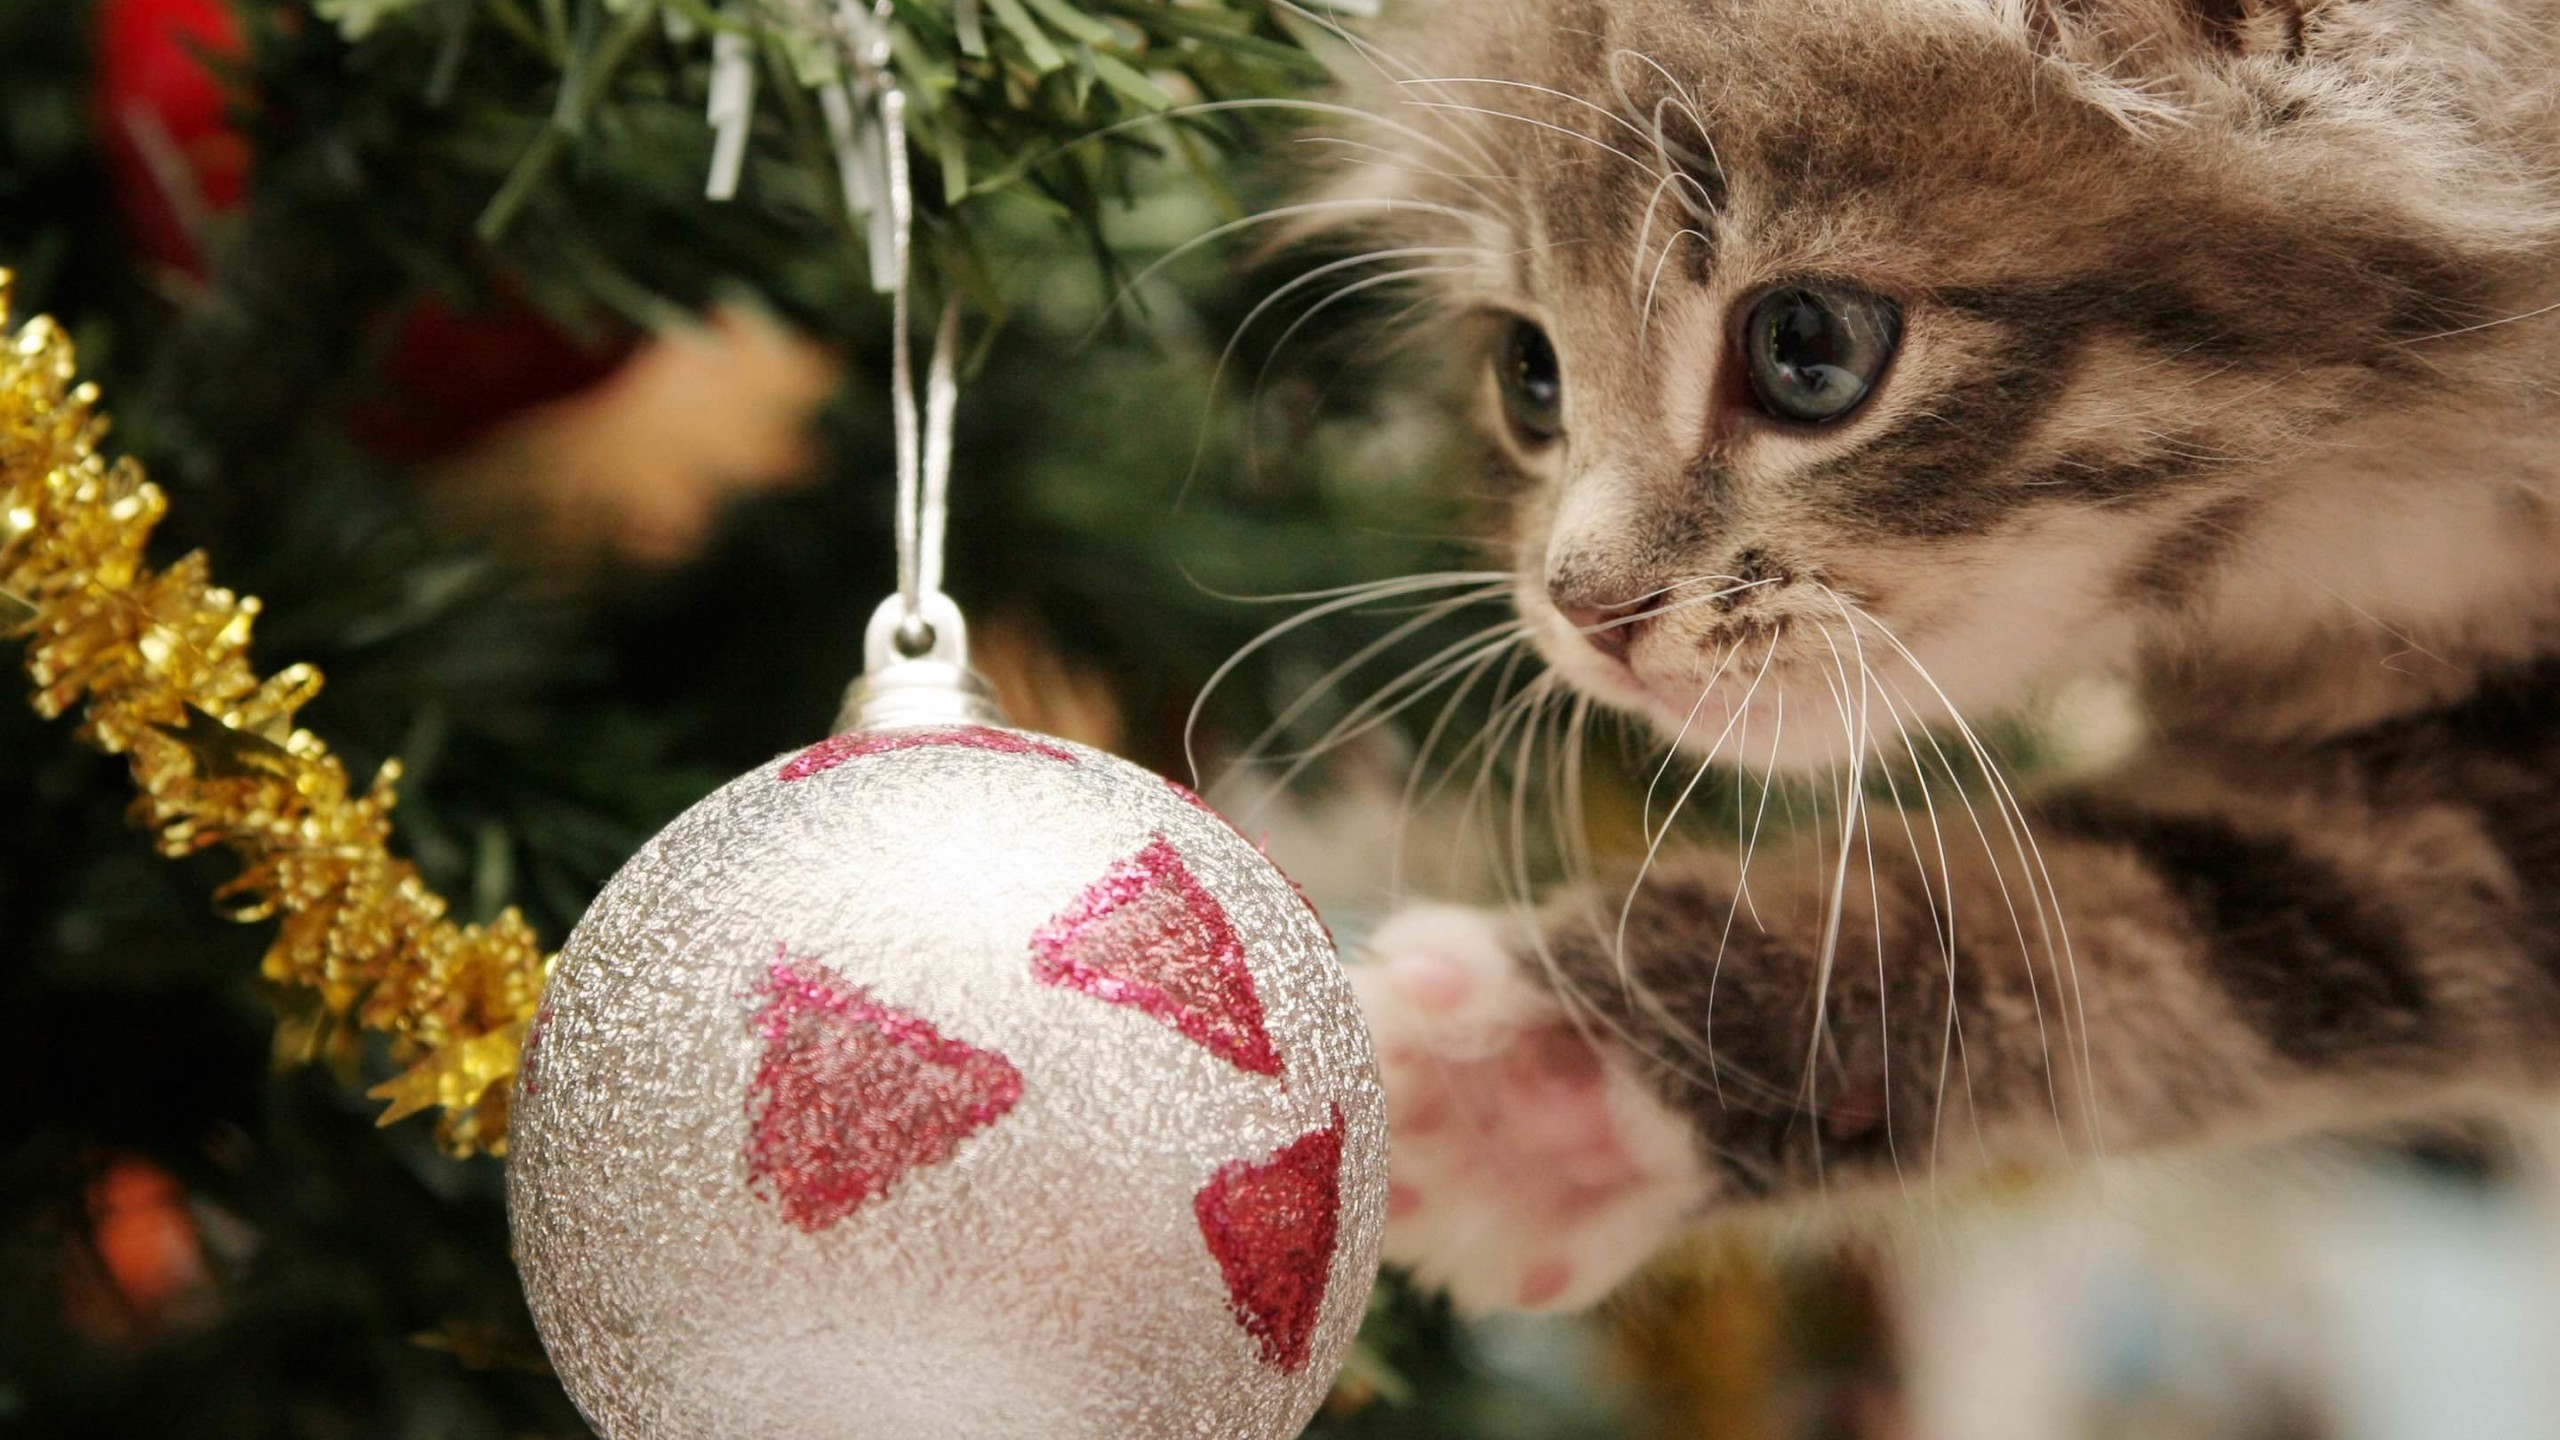 Kitten Playing With Christmas Ornaments Wallpaper for Social Media YouTube Channel Art